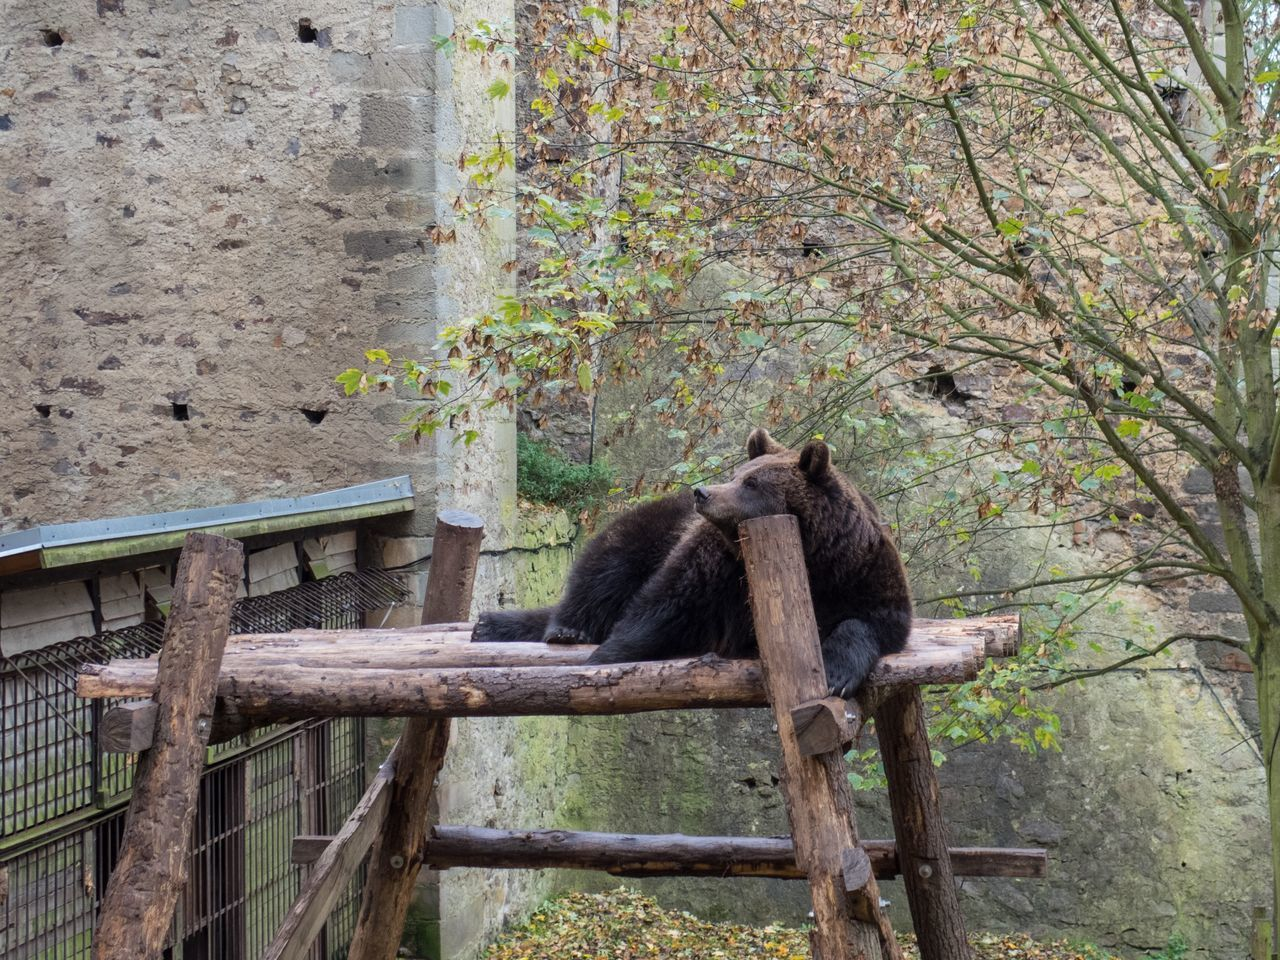 animal themes, mammal, no people, day, one animal, animals in the wild, outdoors, wood - material, animal wildlife, nature, full length, tree